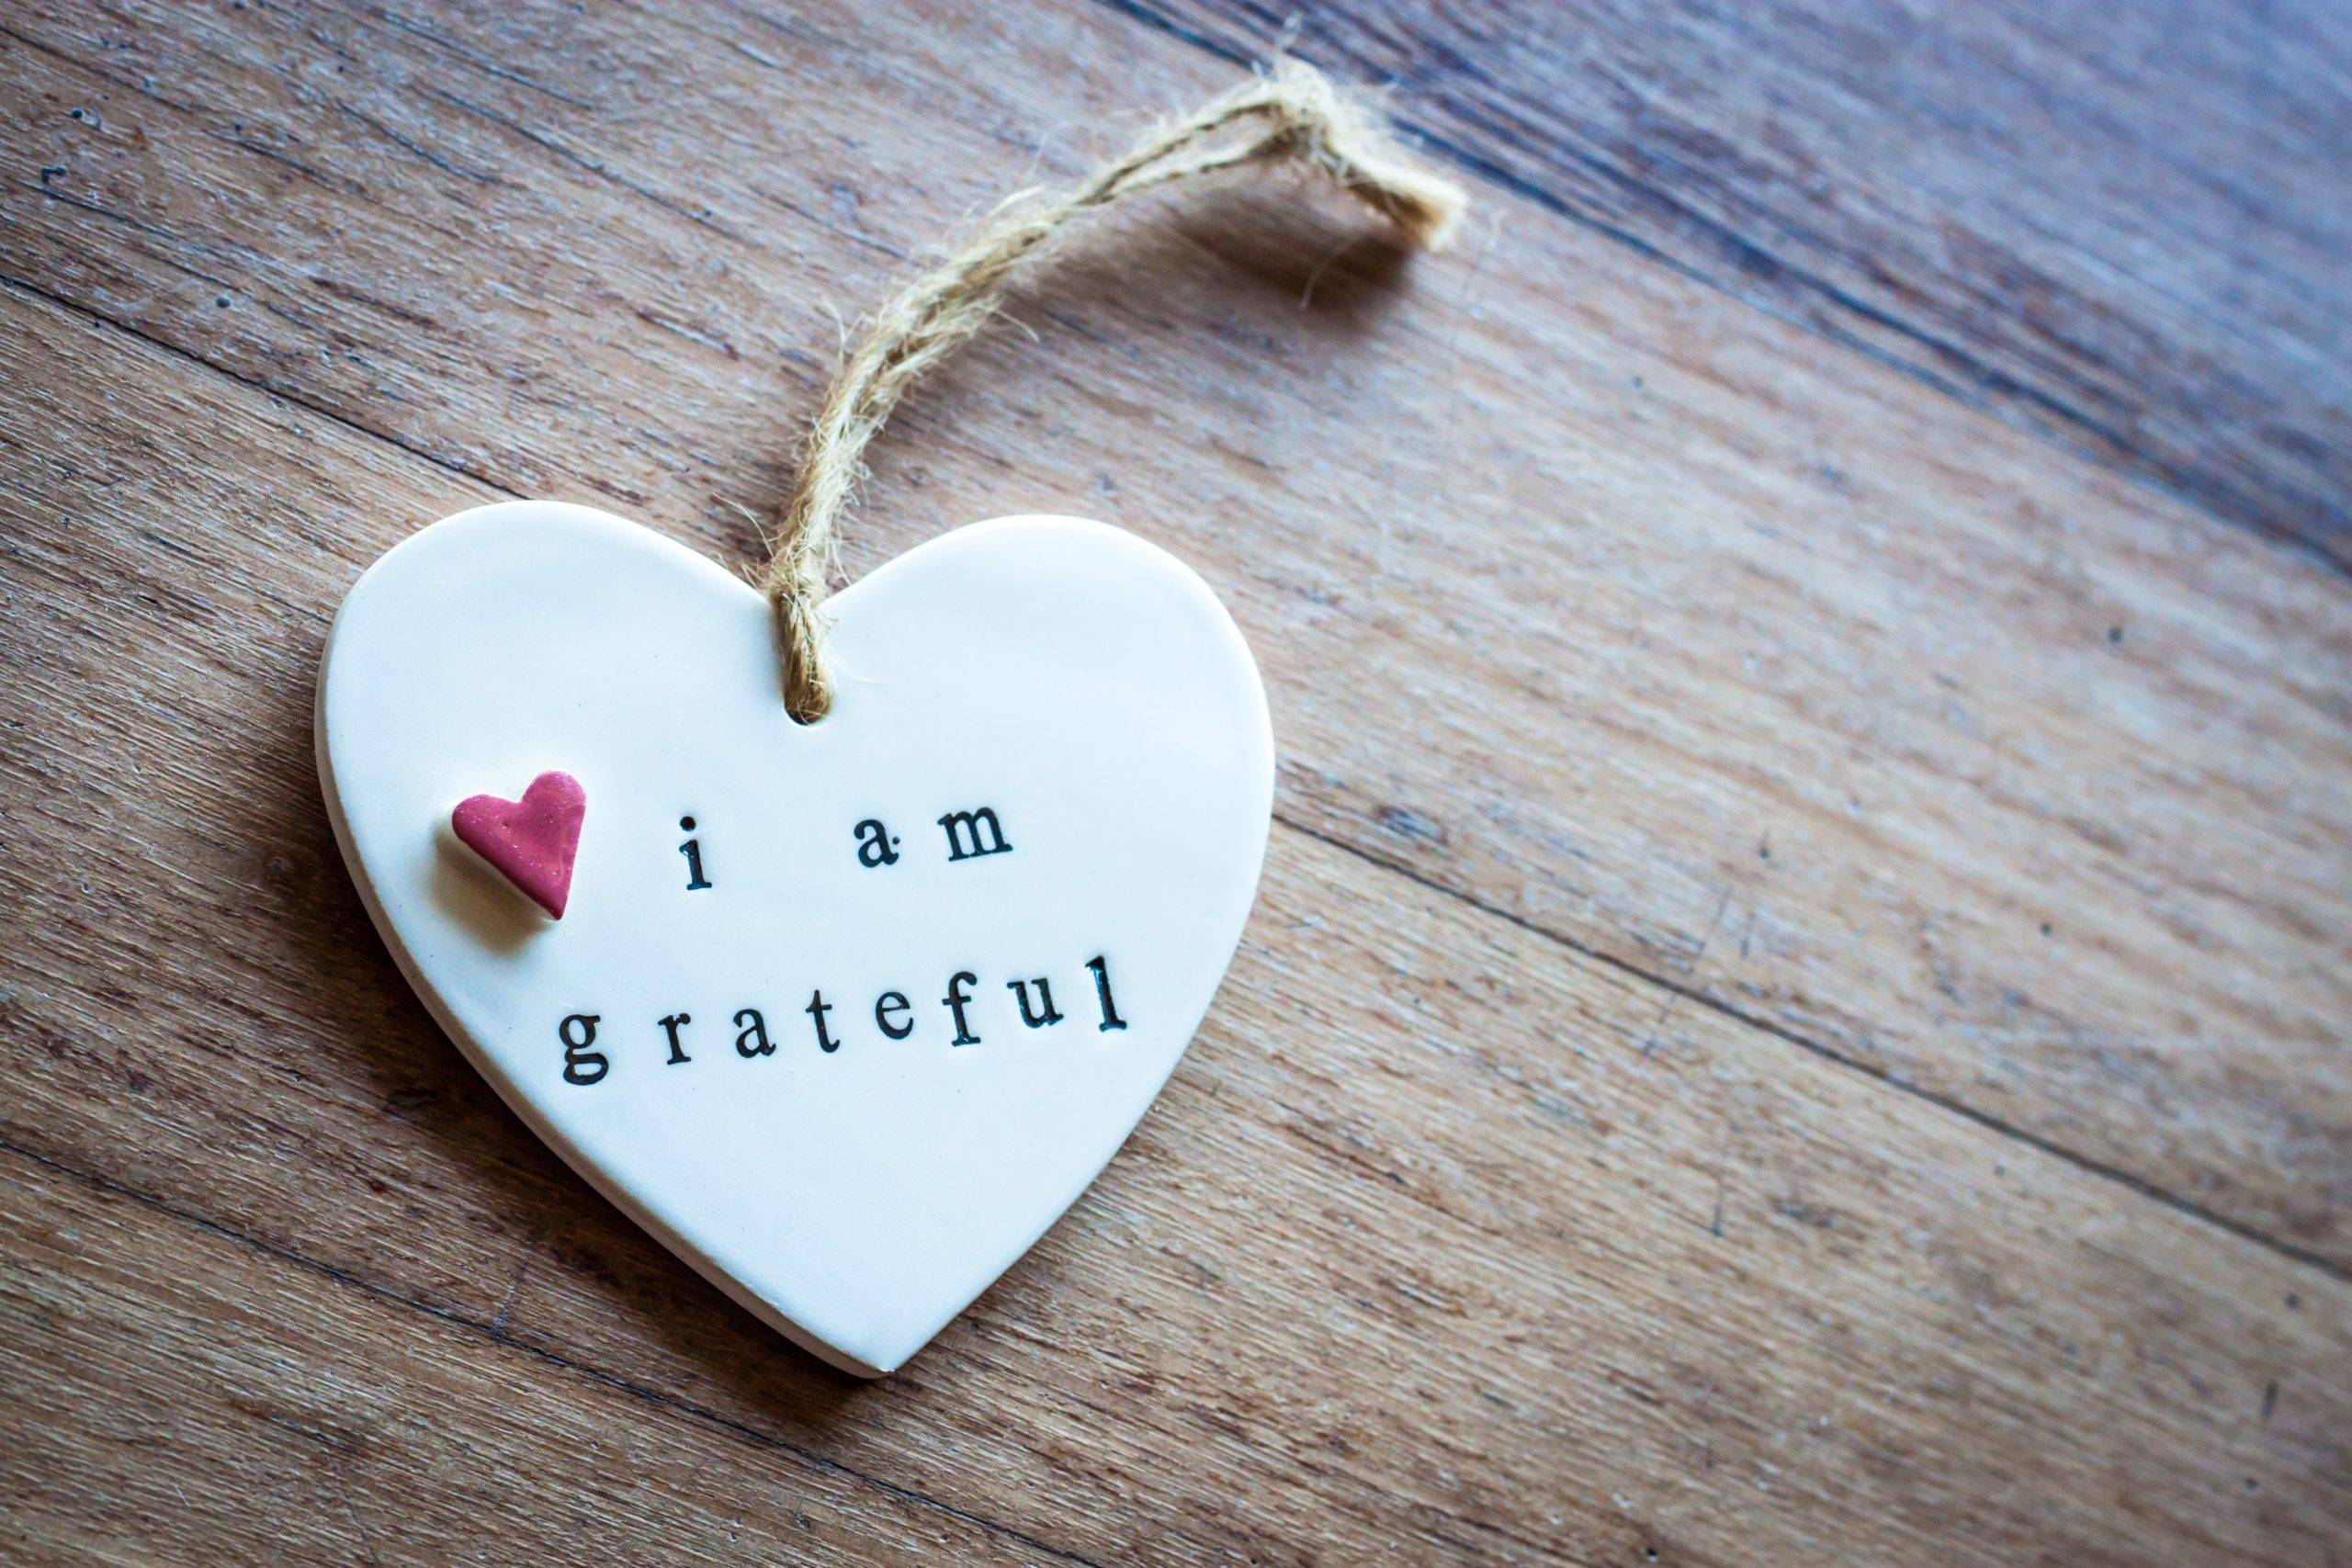 Turn Gratitude Into an Action, Not a Hashtag